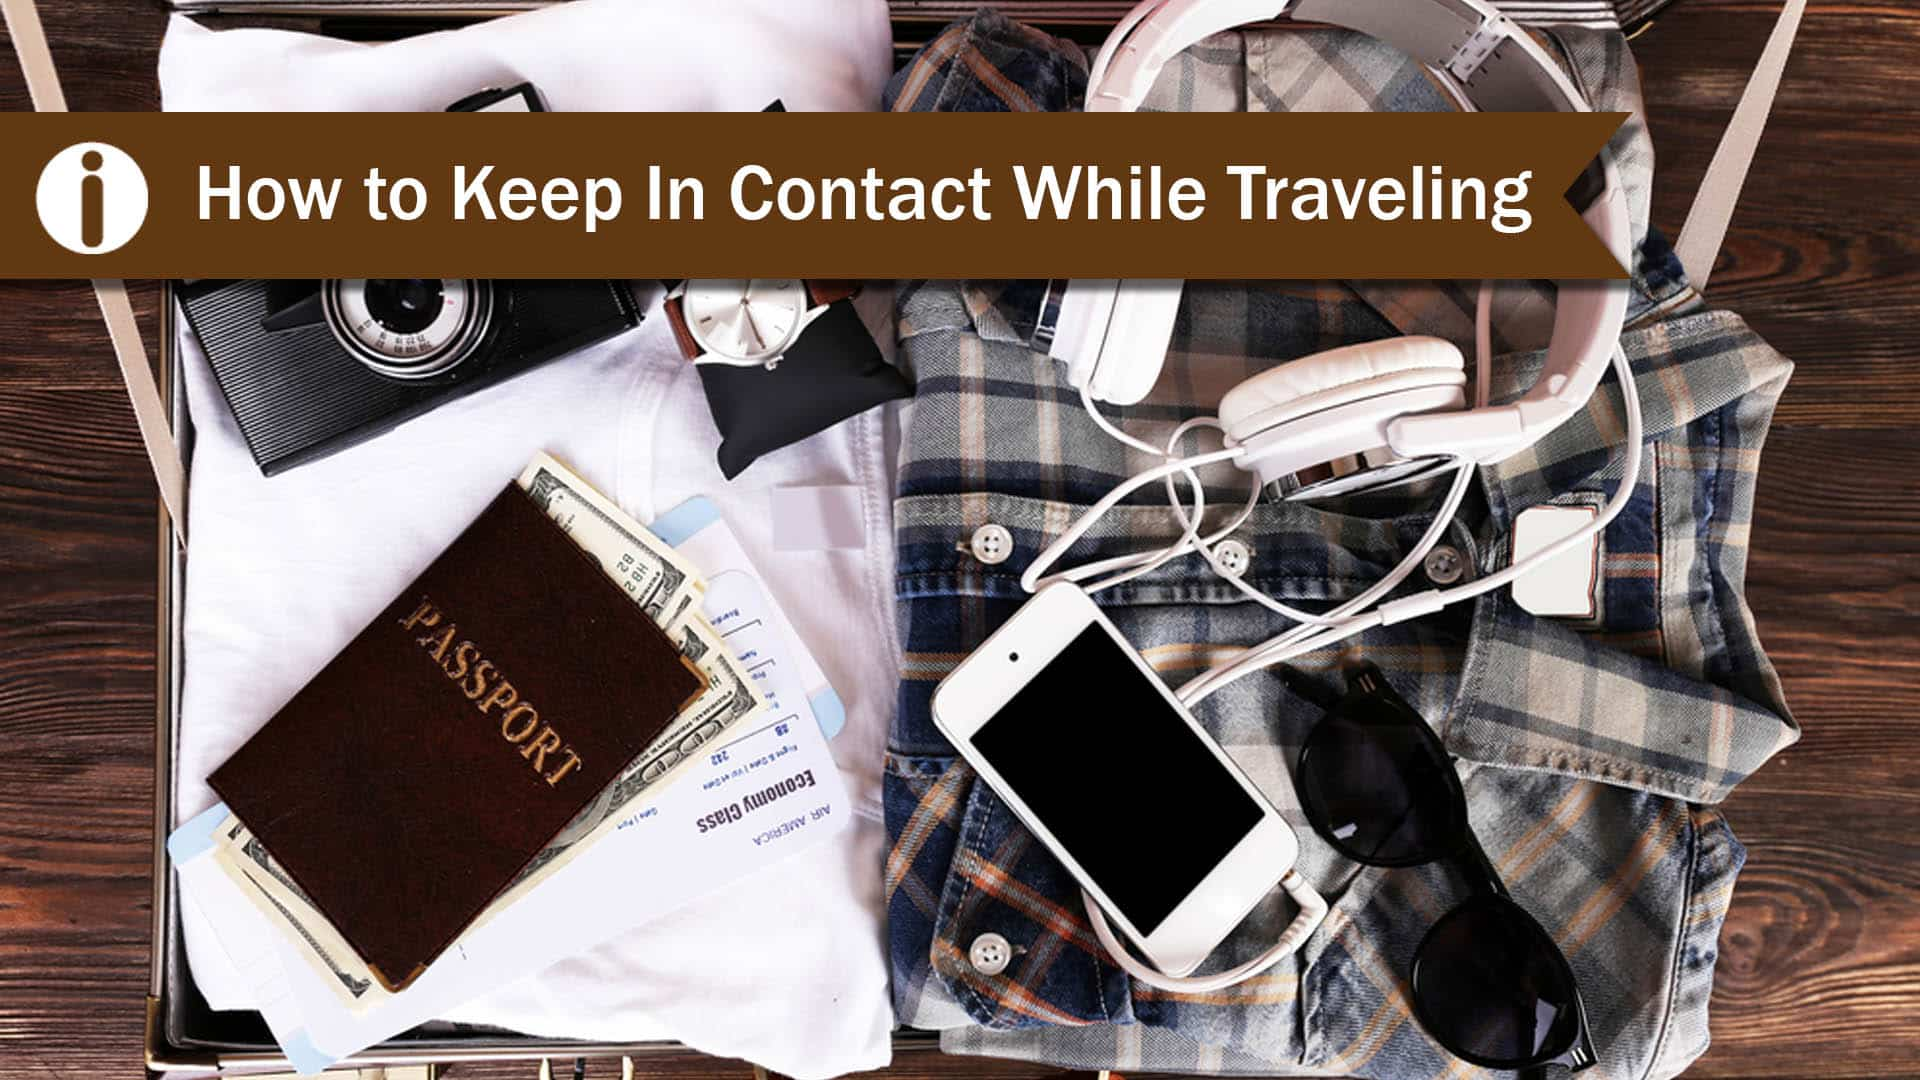 How To Keep In Contact While Traveling